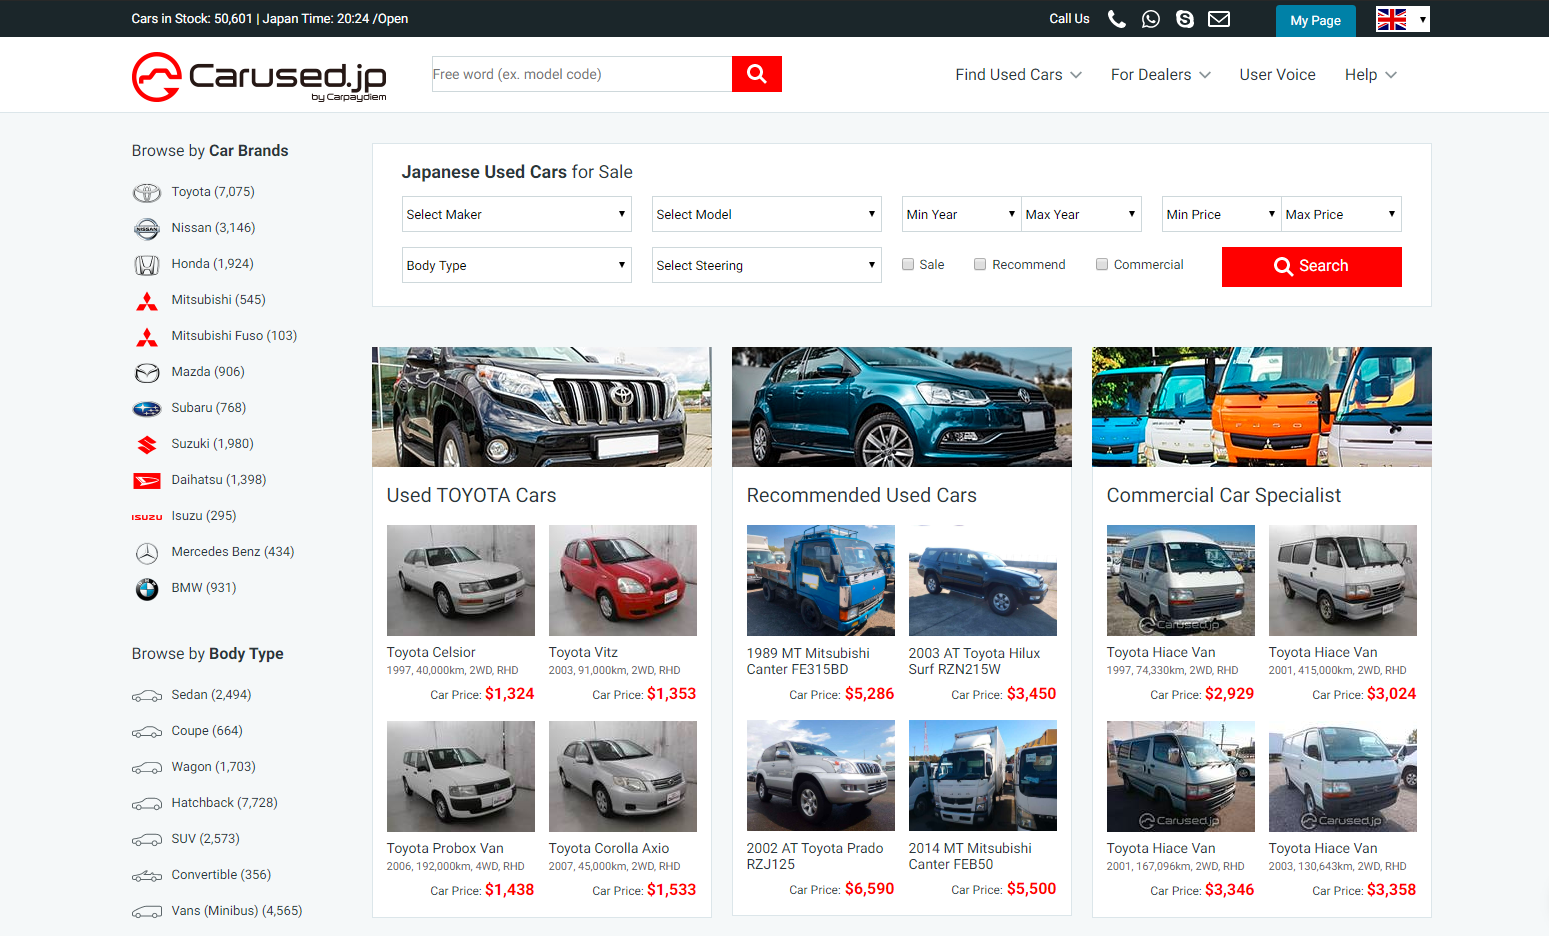 Carused Jp Top Quality Japanese Used Cars For Sale At Good Prices Carused Jp